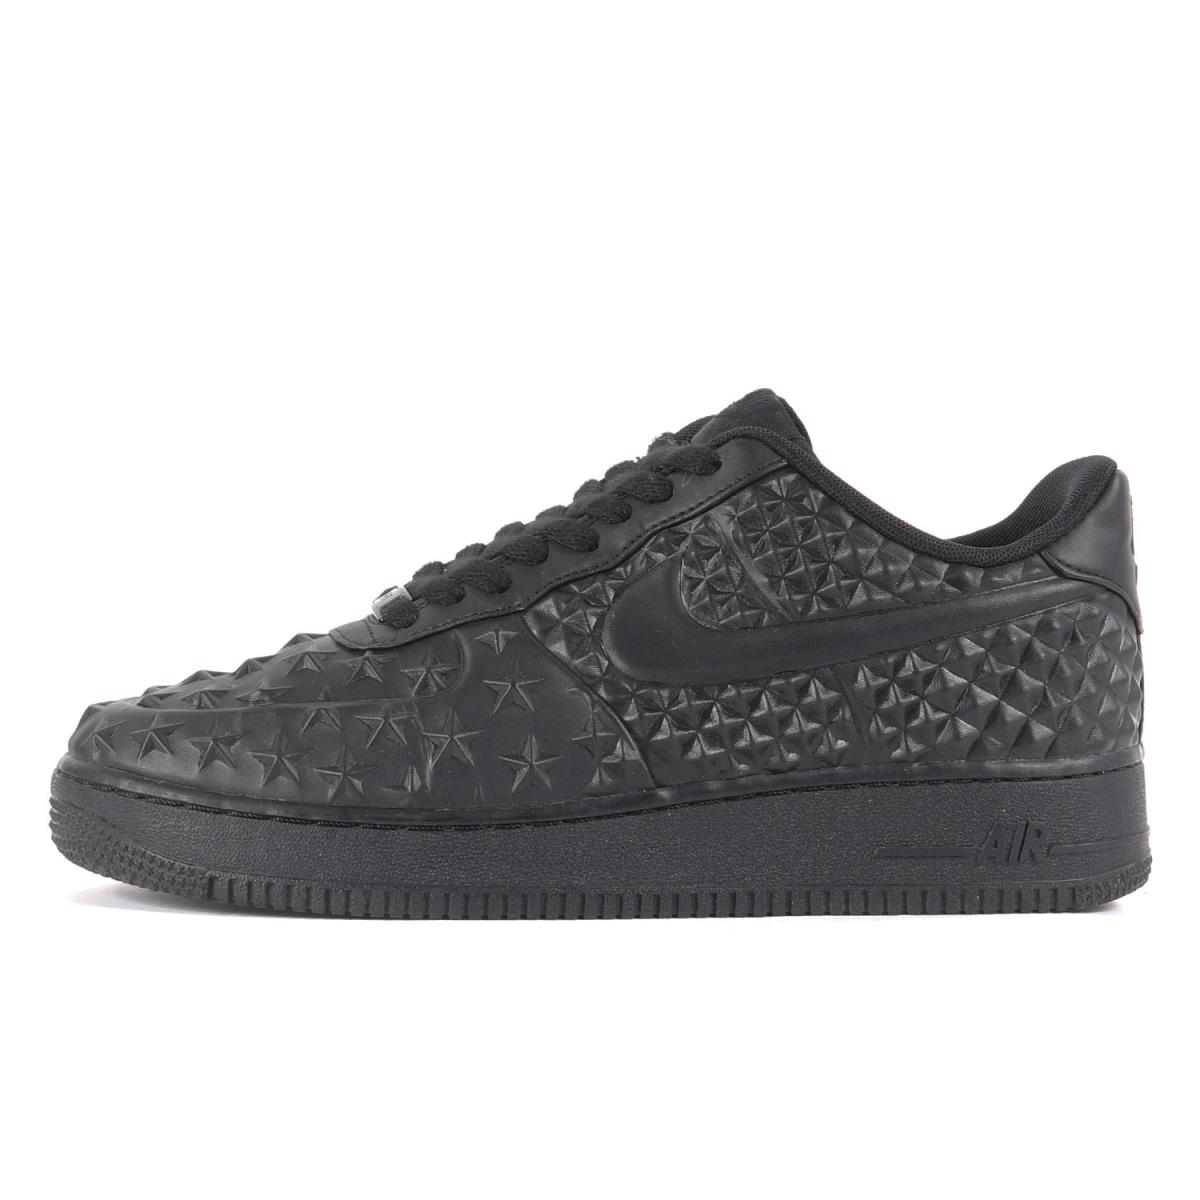 NIKE Nike AIR FORCE 1 LV8 VT INDEPENDENCE DAY 789,104 001 black US9.5 27.5cm